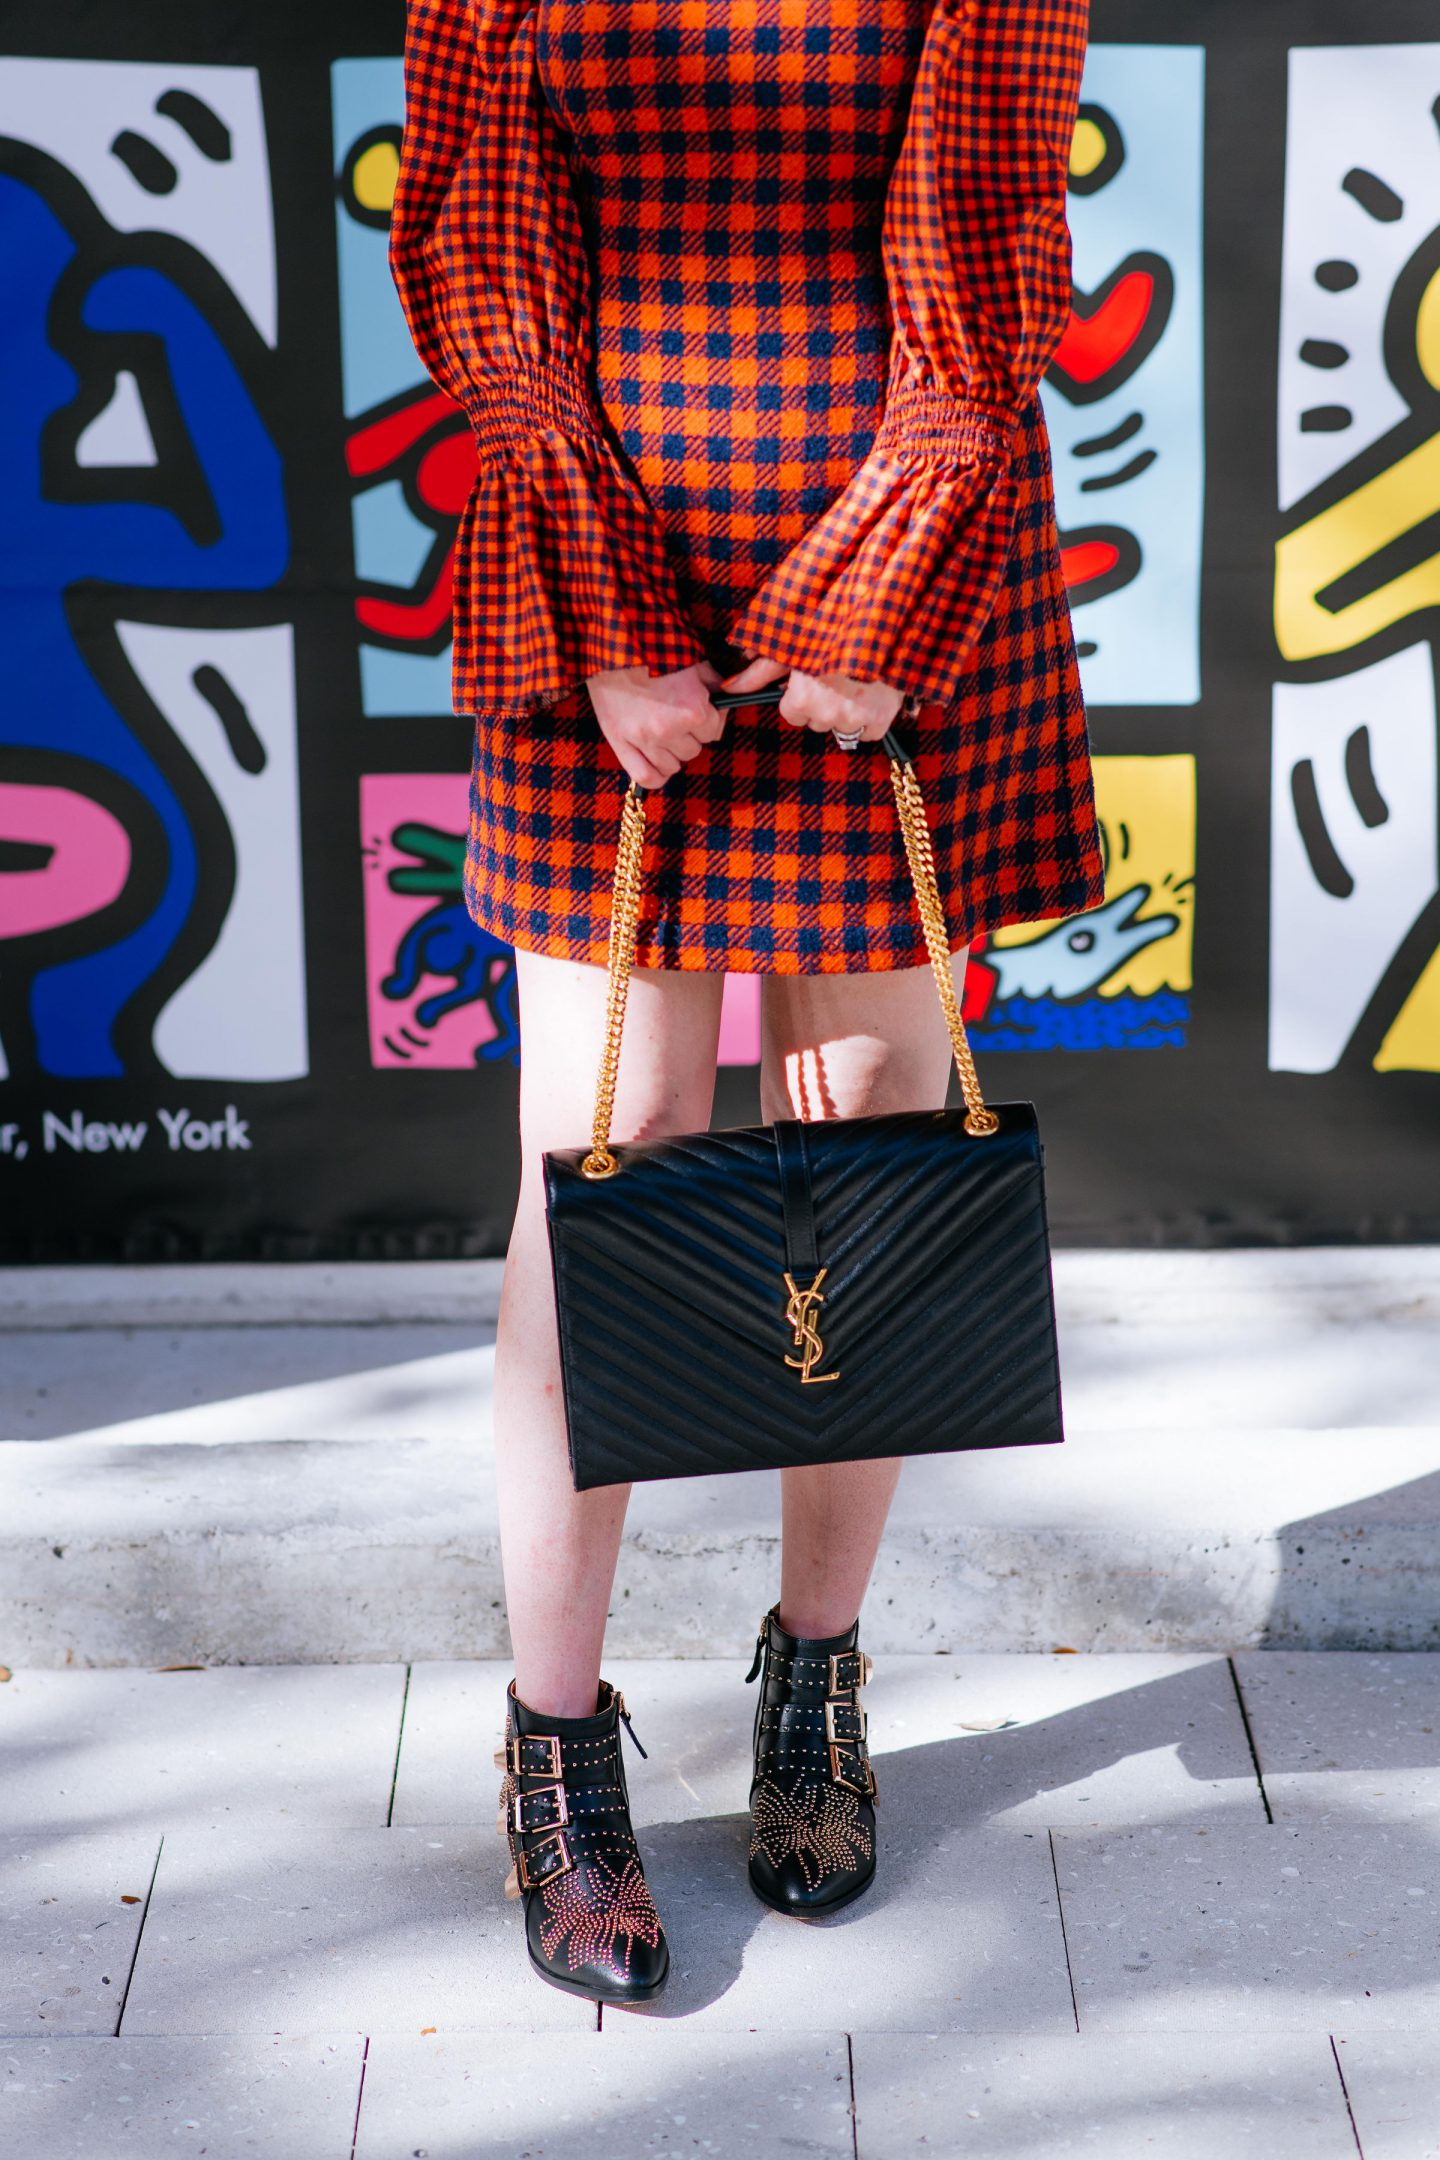 sea new york orange check, sea ethno pop dress, flannel dress, plaid dress, ysl cassandre bag, ysl shoulder bag, chloe sussanna dupes, dupes for chloe susanna boots, sea new york plaid dress, sea new york dress, alice and olivia wall, ruffle plaid dress, ruffle sleeves plaid, ruffle sleeves flannel dress